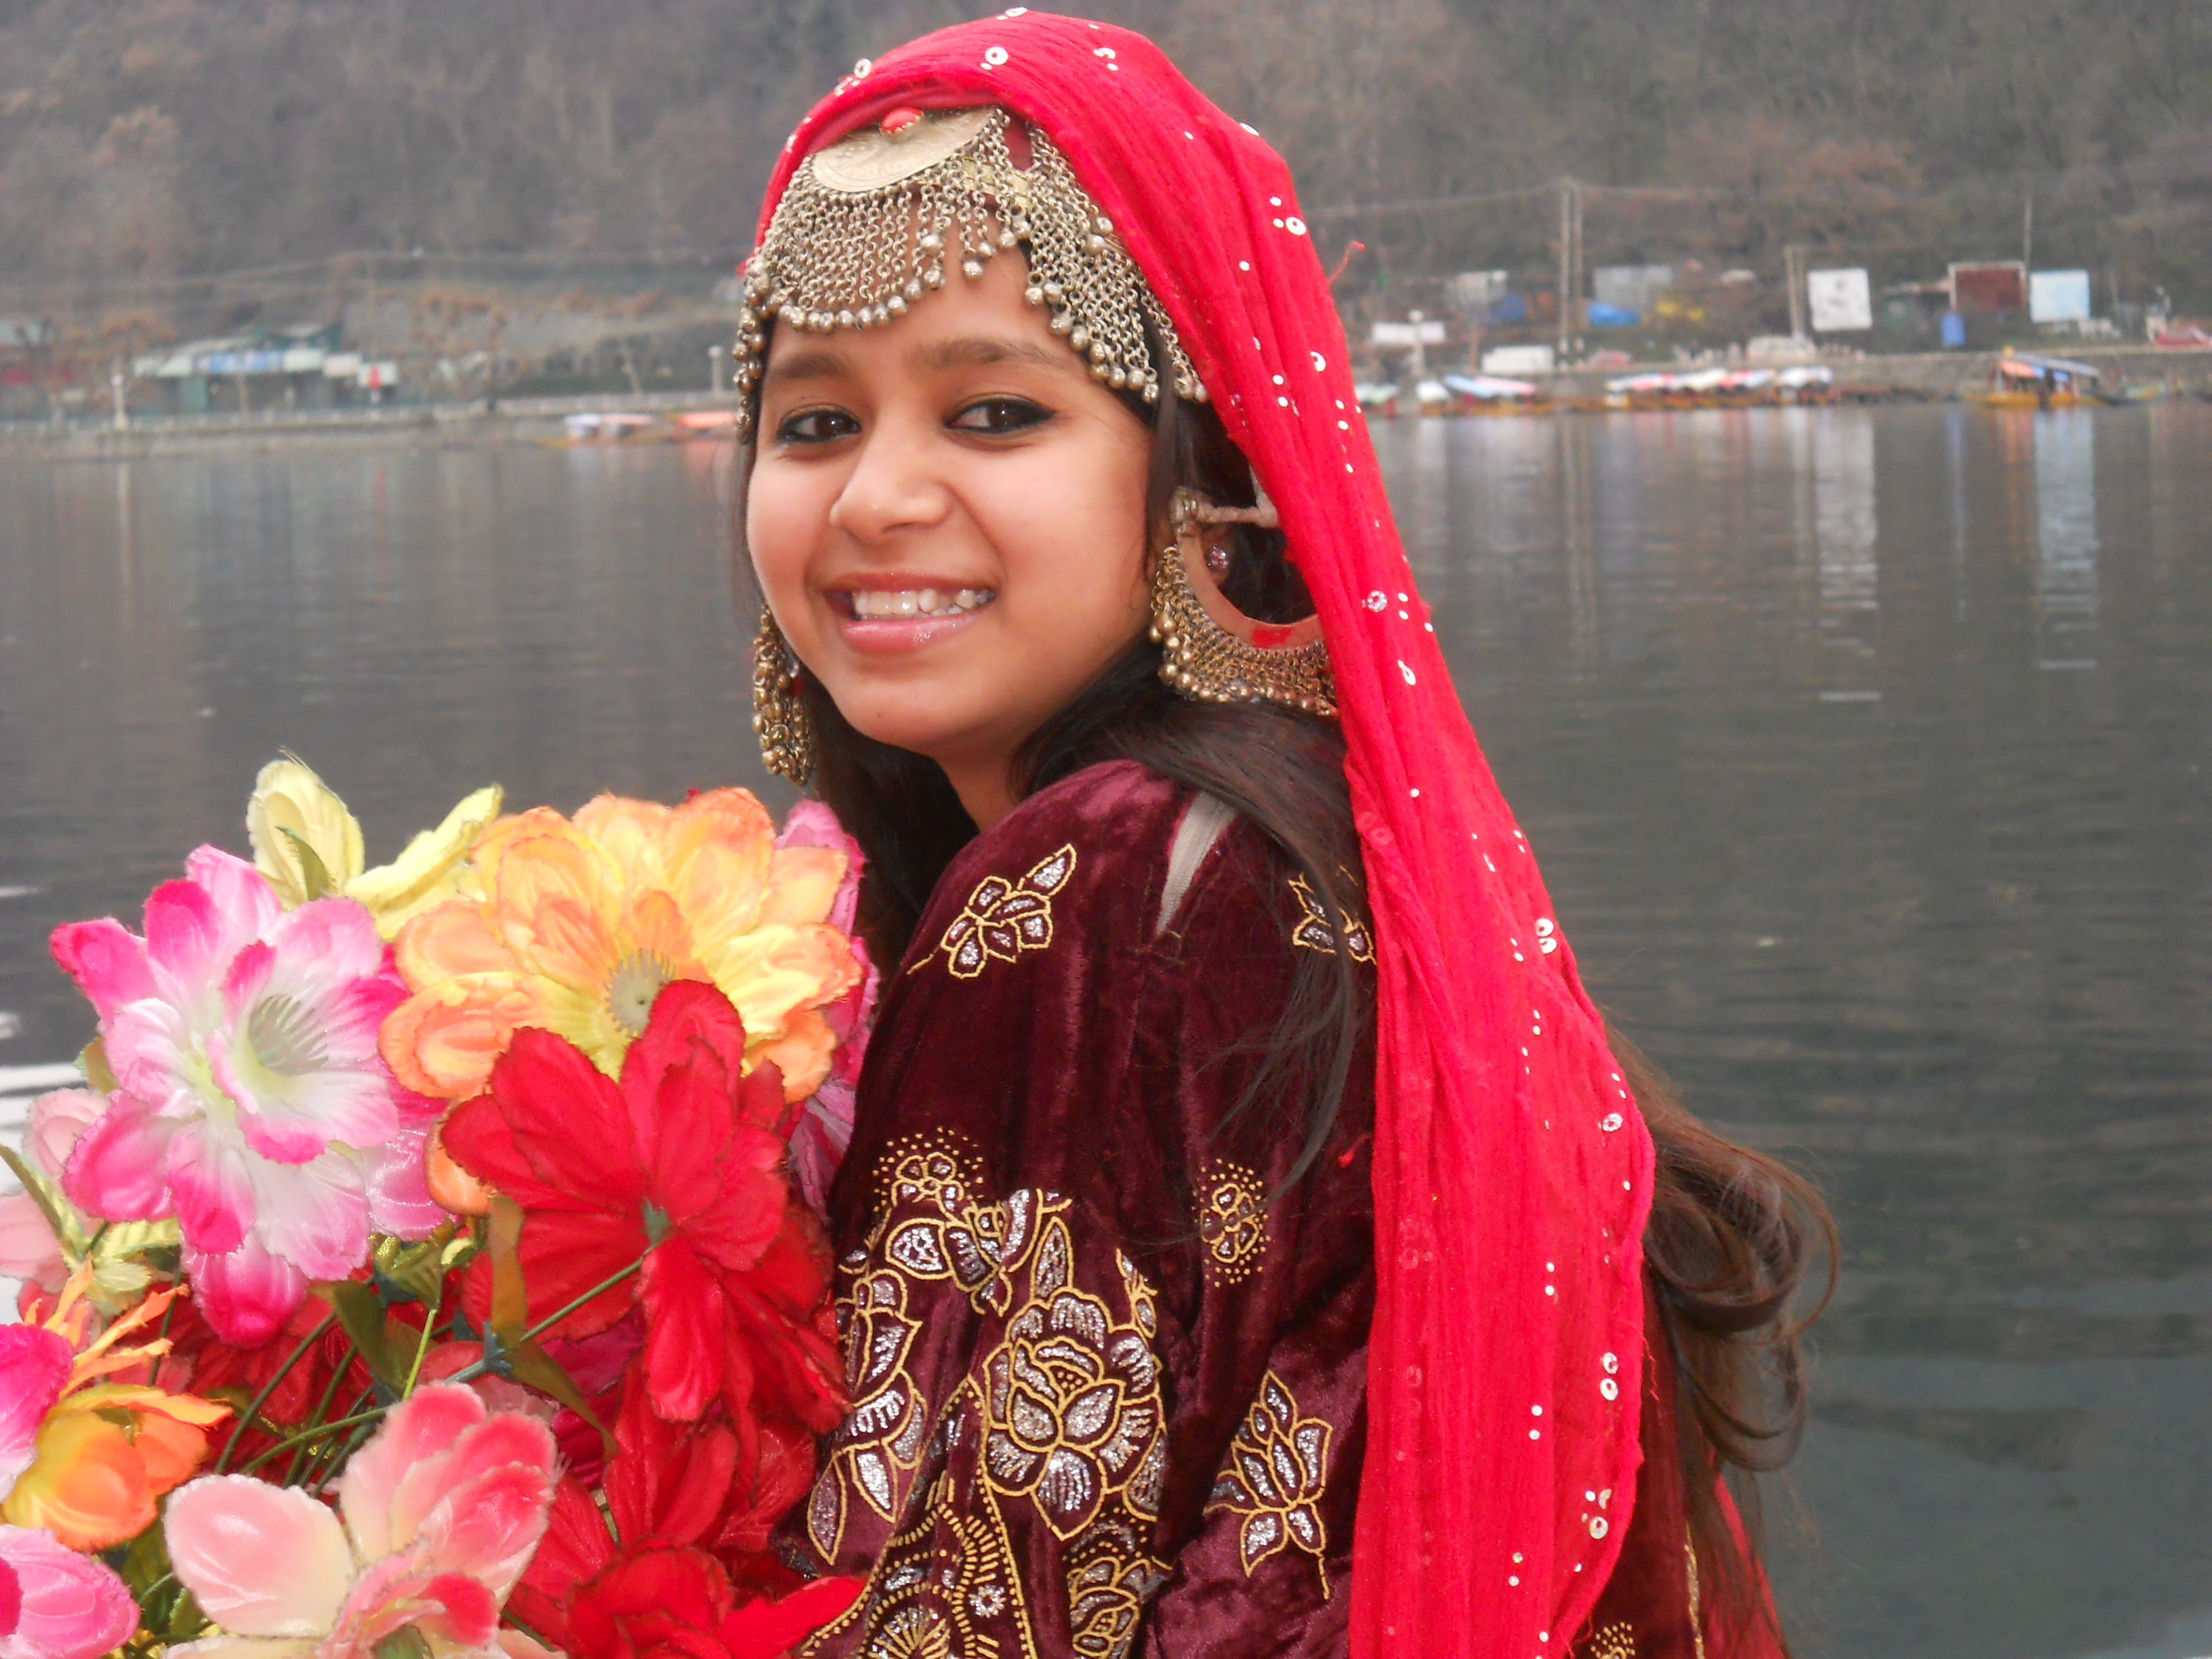 Creative Aarna Rai Fancy Dress Competition Kashmiri Girl Won First Prize